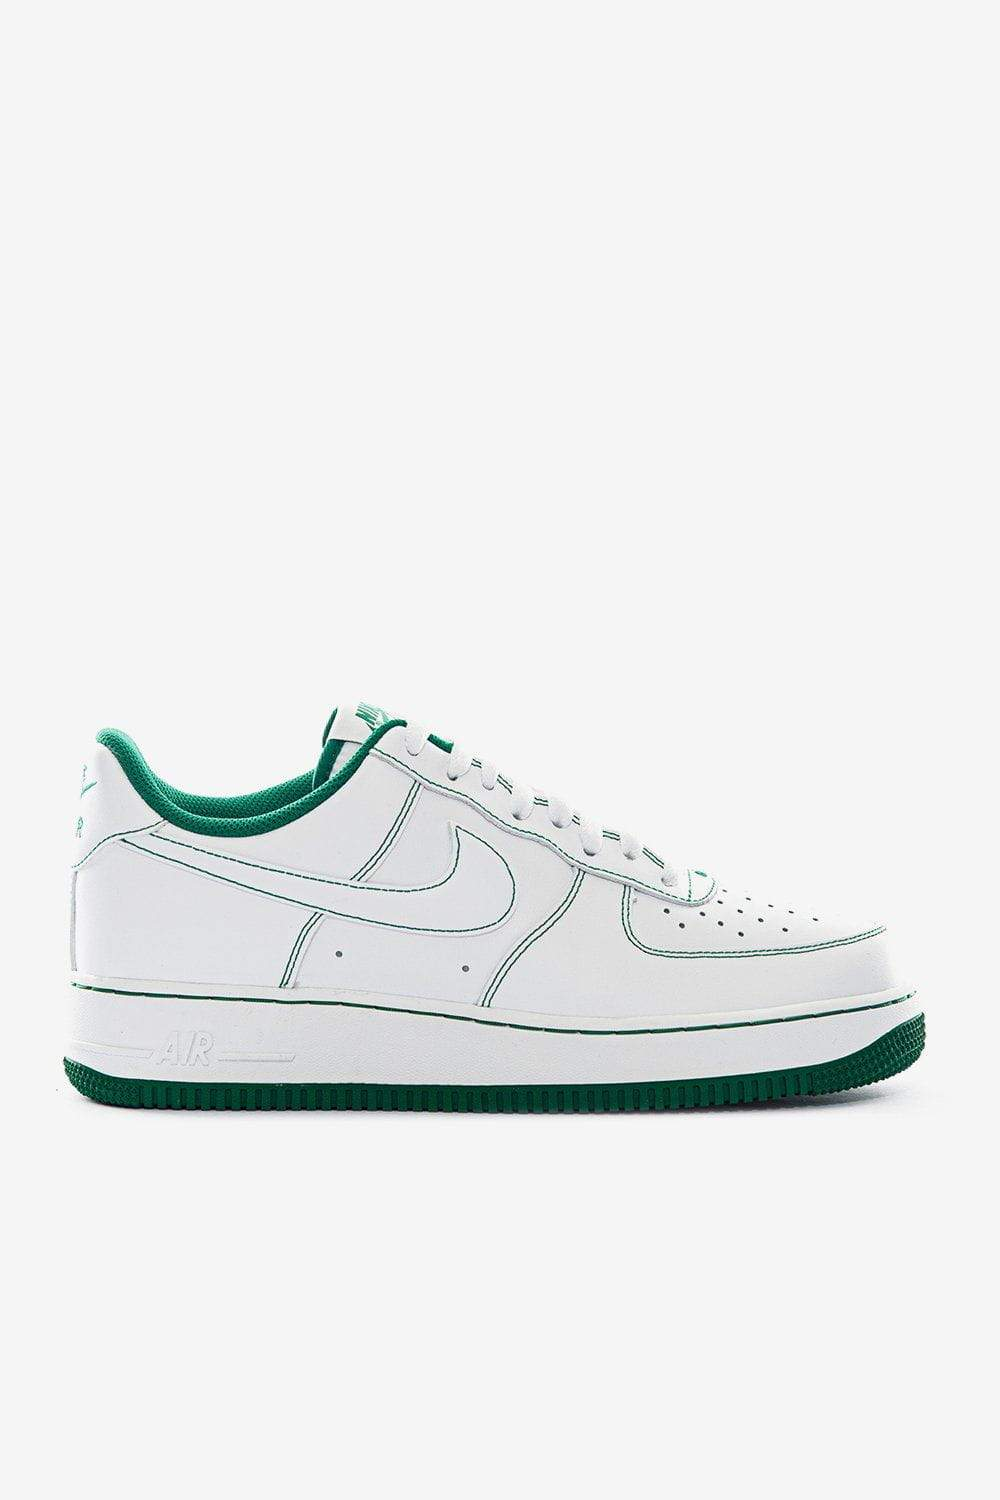 Nike Footwear Air Force 1 Low '07 'Pine Green'